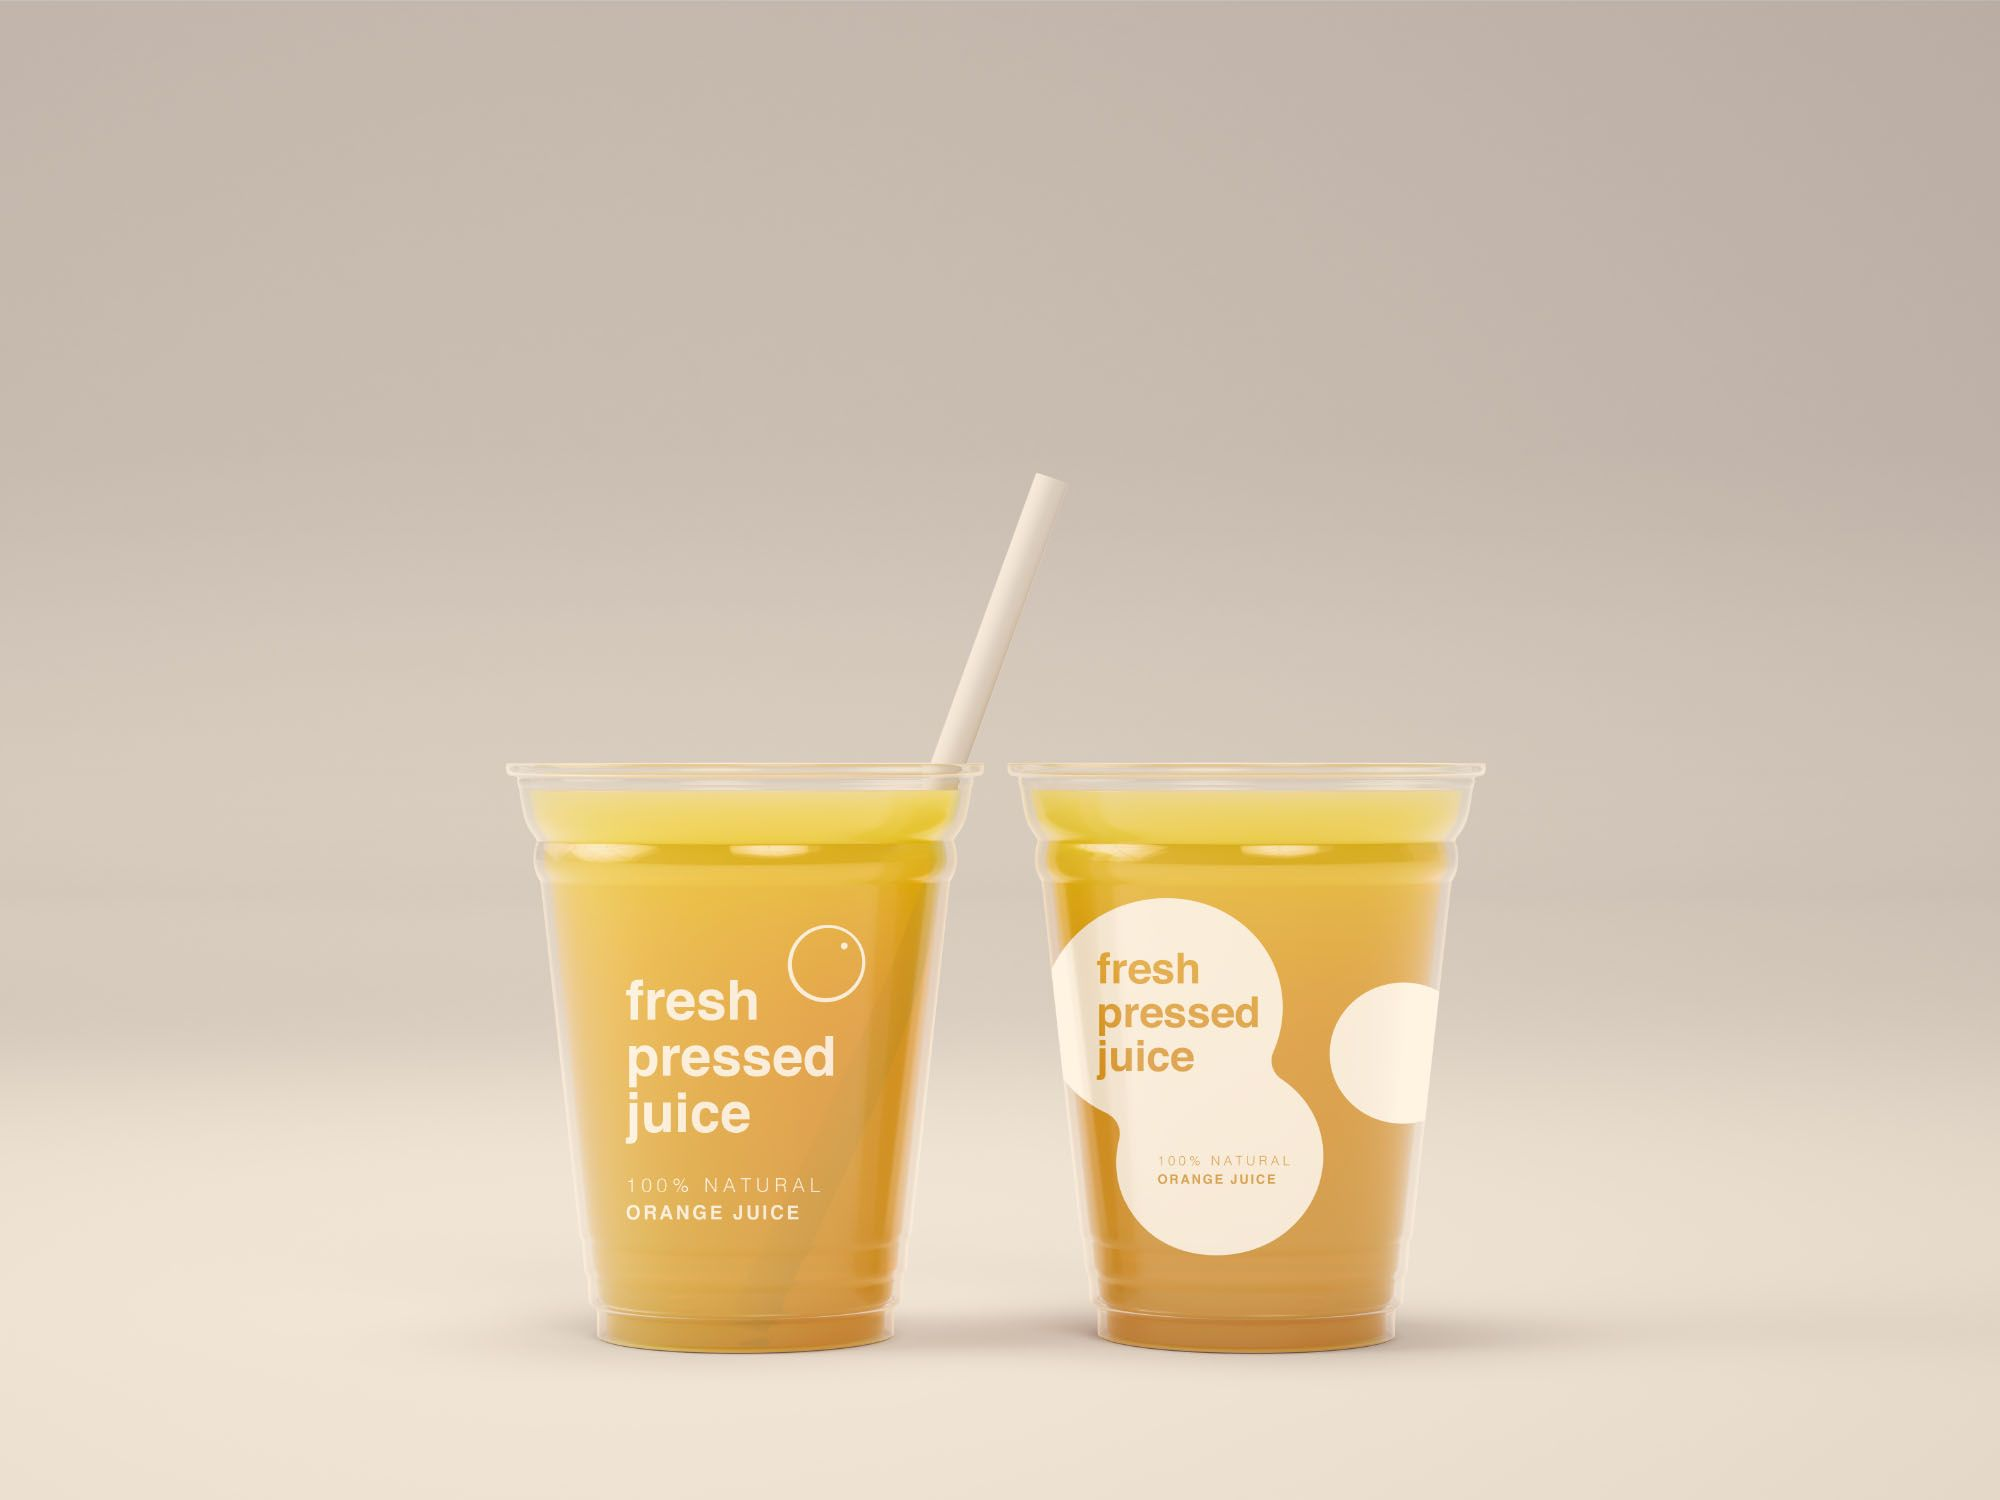 Download Juice Cups Mockup Psd Mockup Free Psd Juice Cup Mockup Psd Yellowimages Mockups